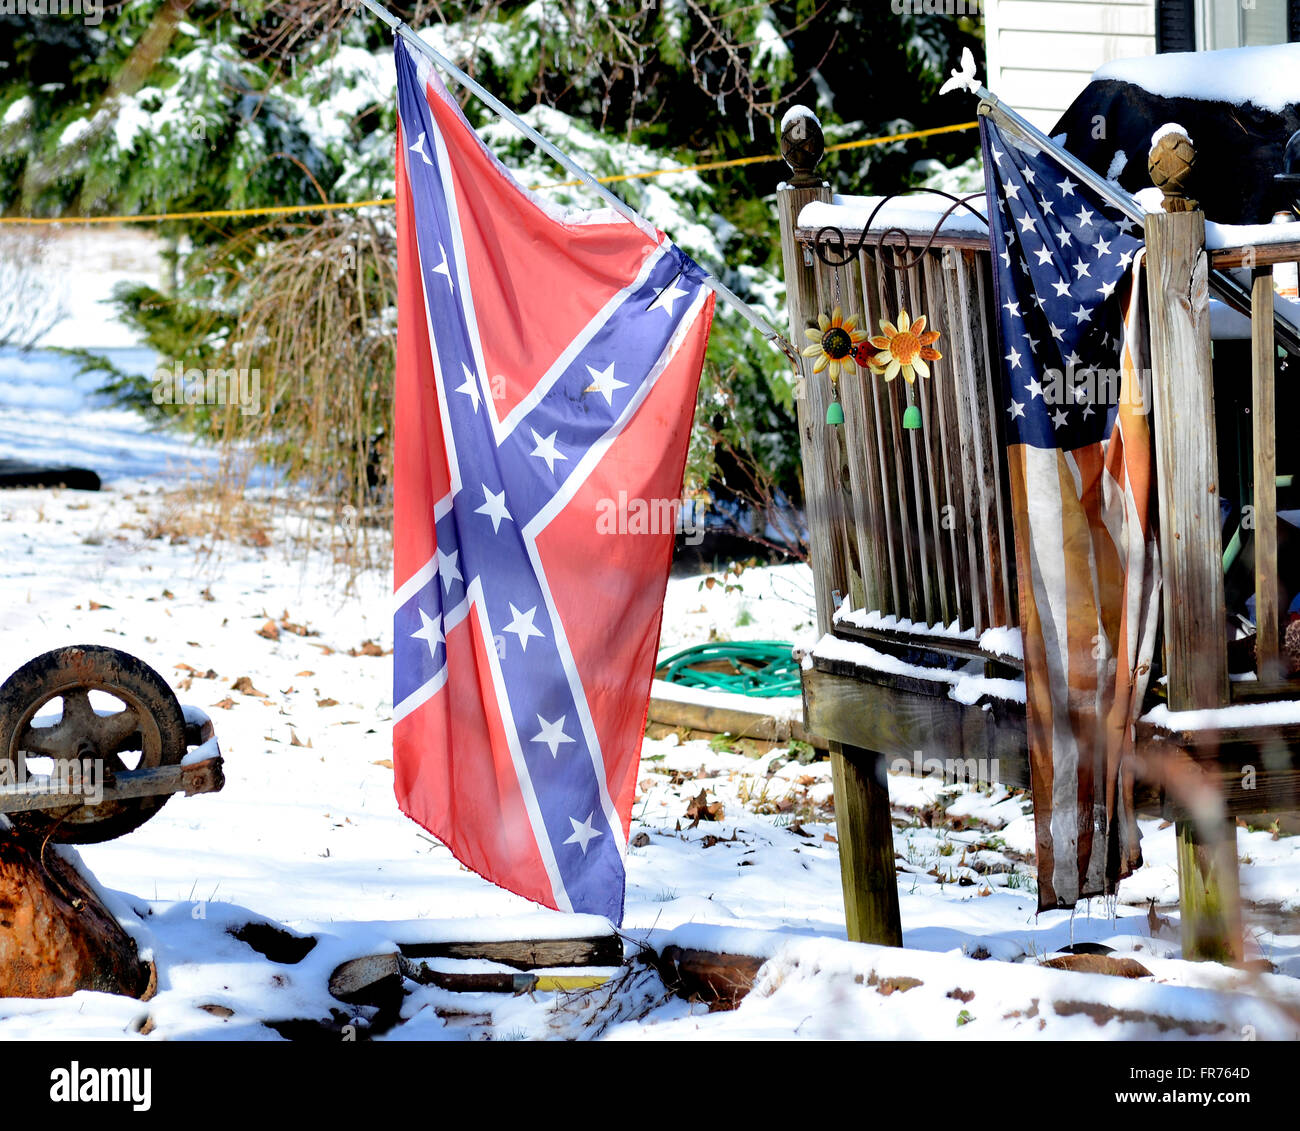 Flags on display in the yard of a messy house on a winter day. - Stock Image